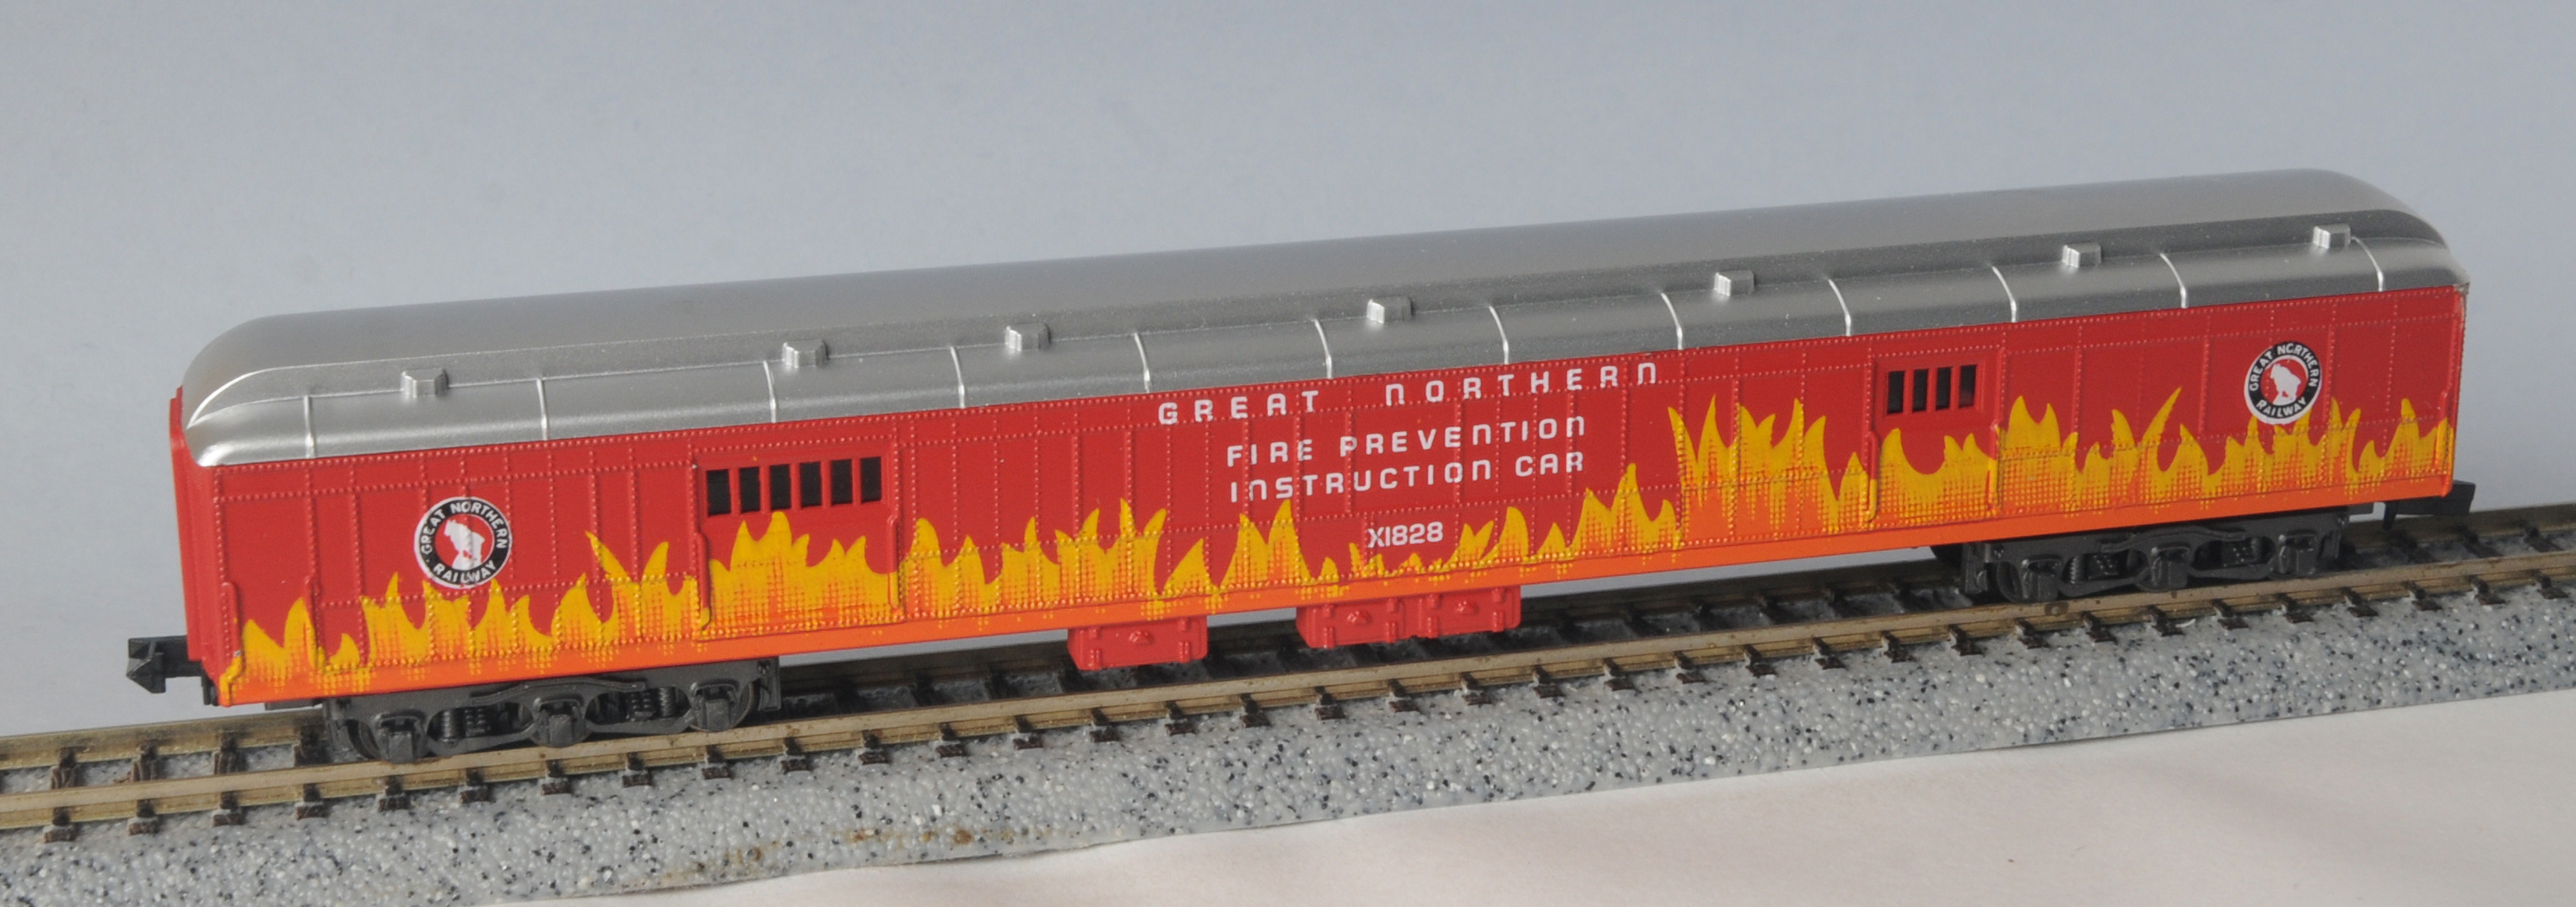 N Scale - Third Rail Graphics - 198 - Passenger Car, Heavyweight, Baggage - Great Northern - X1828